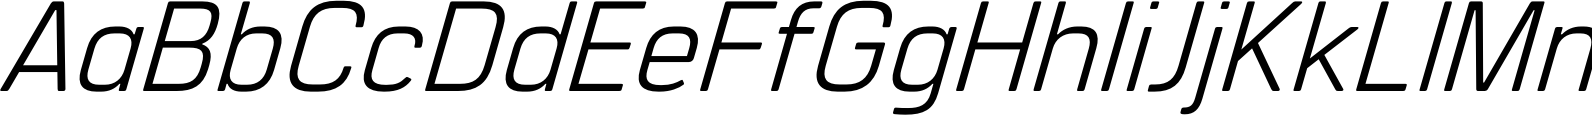 Manifold CF Regular Oblique Font